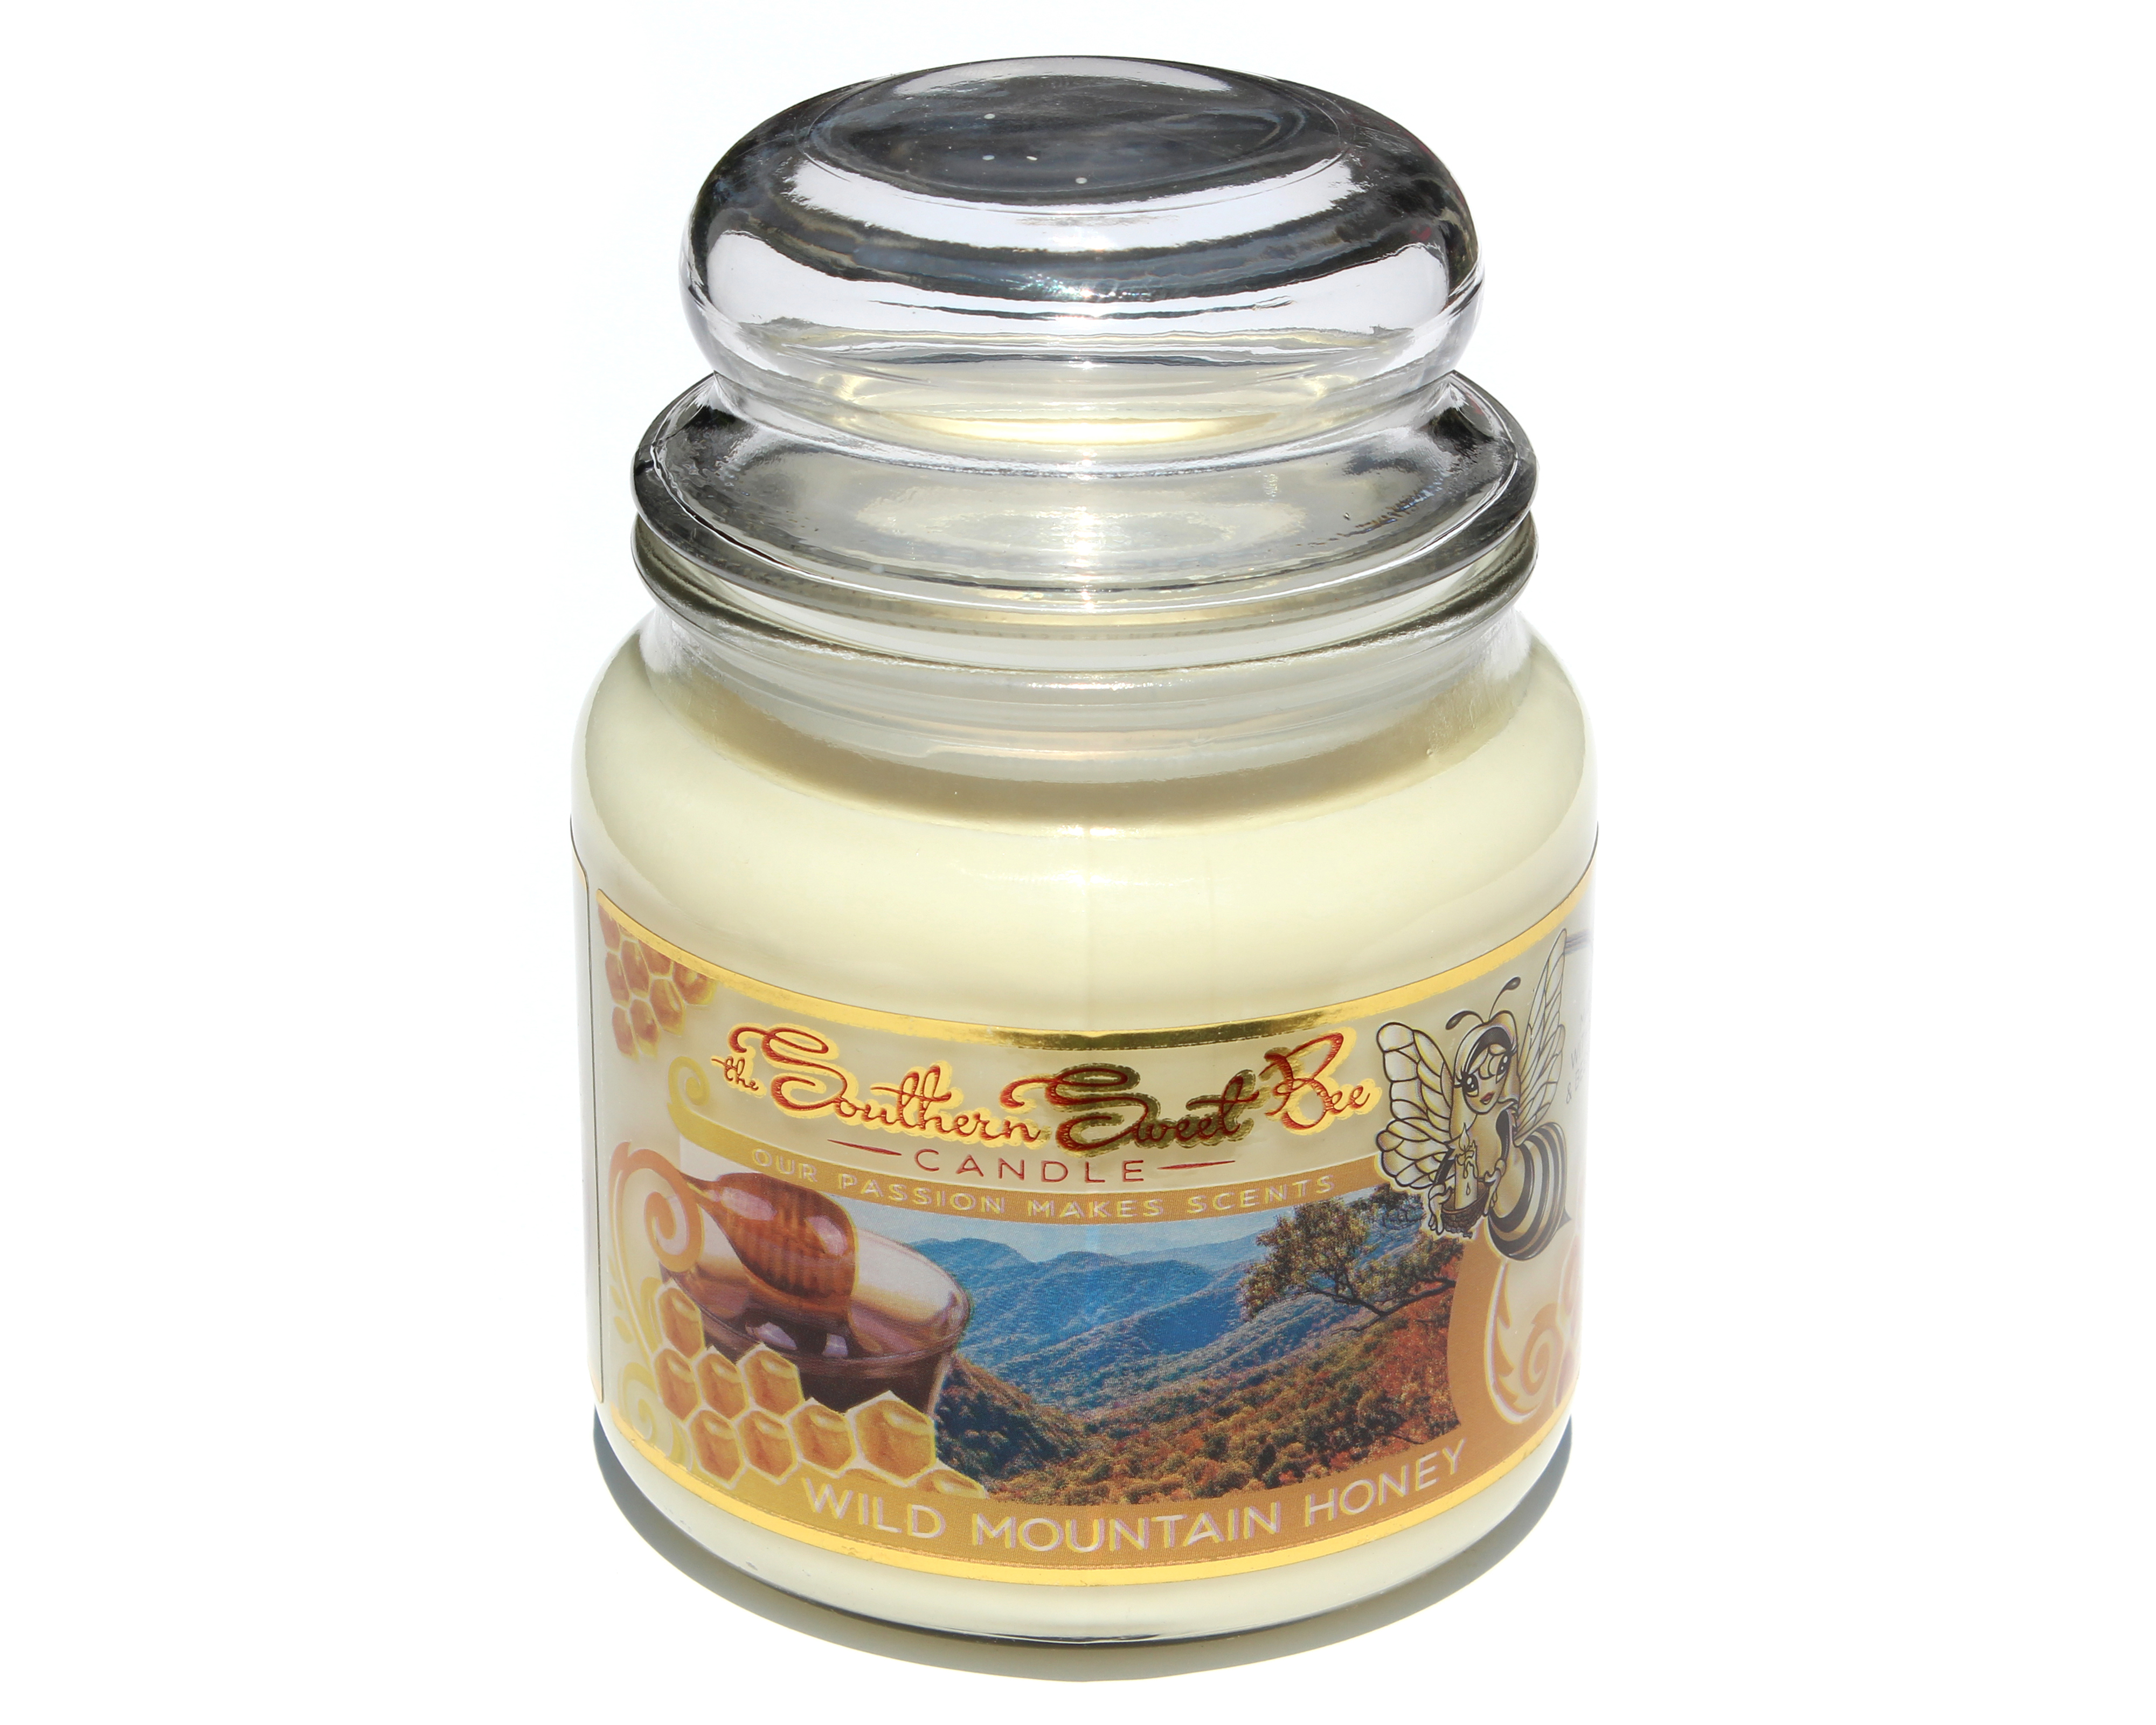 Wild Mountain Honey Beeswax Candle